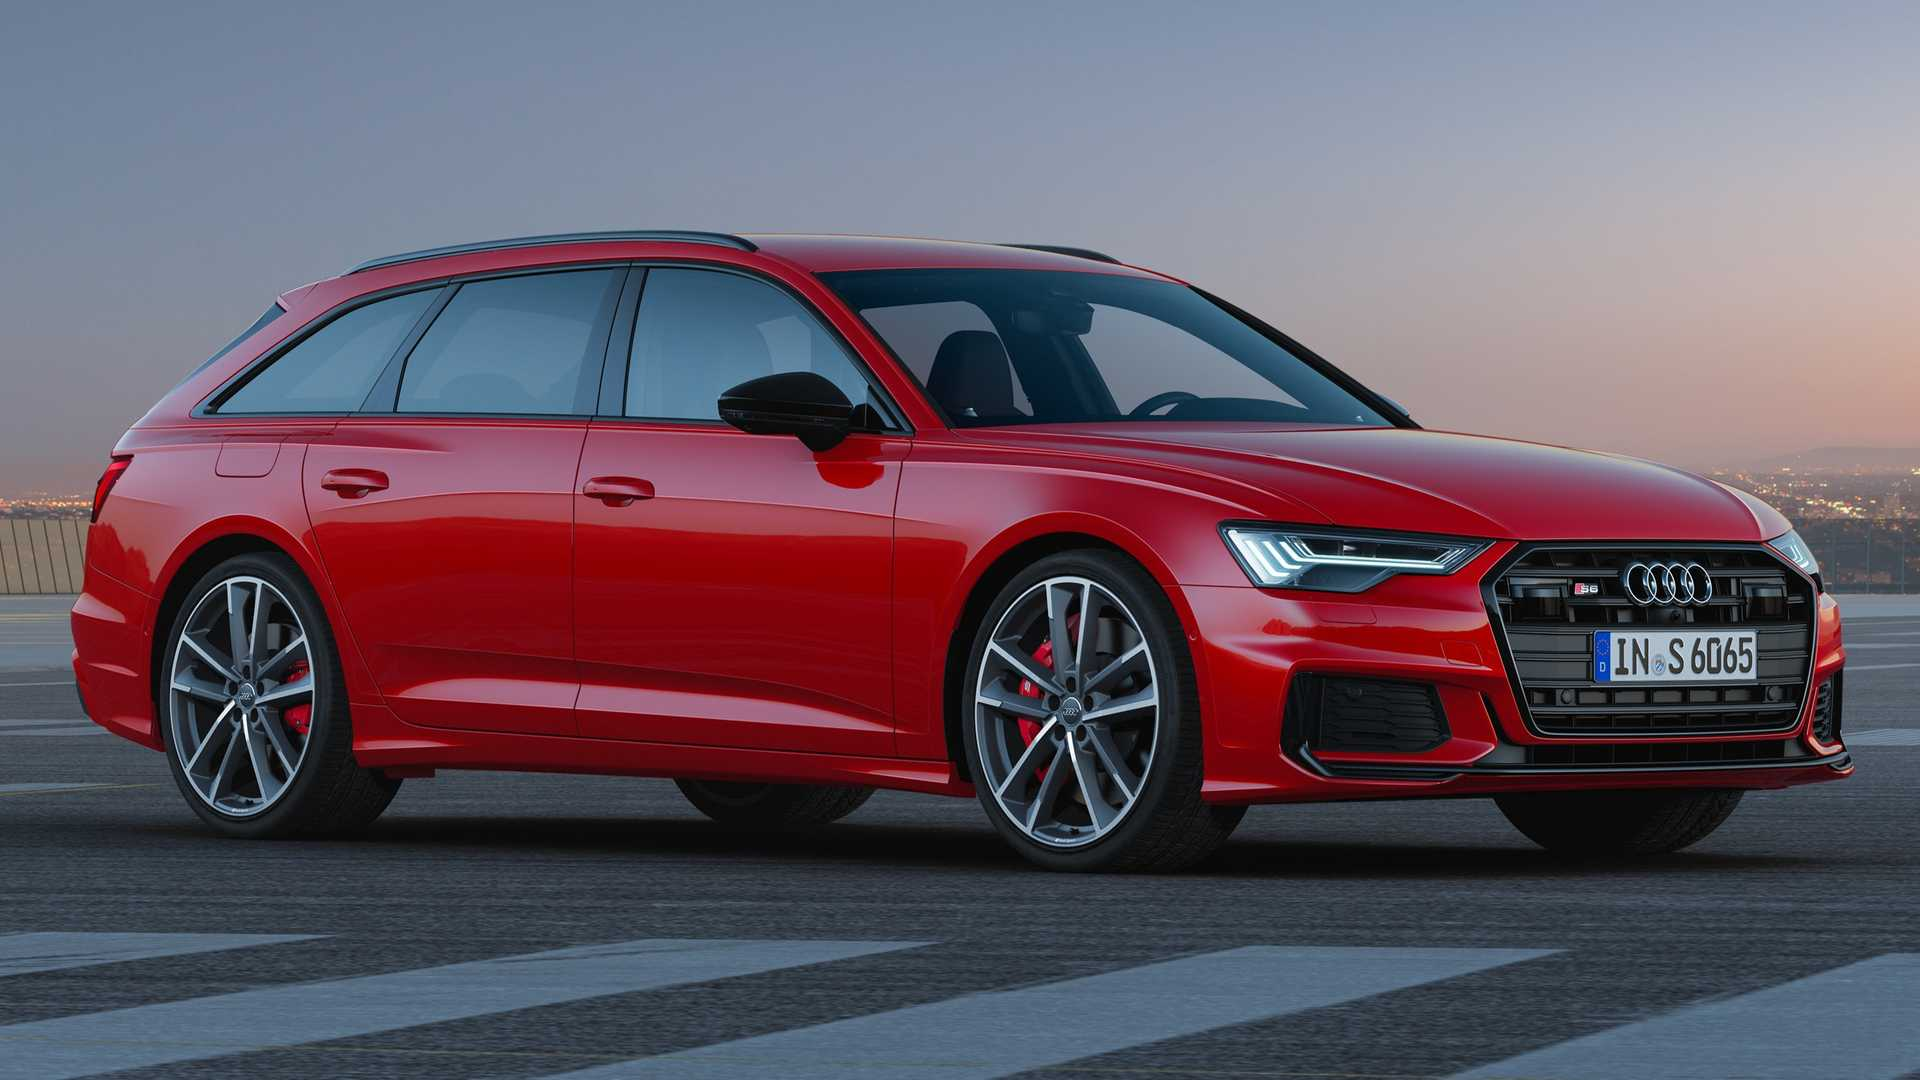 37 New 2020 Audi Rs6 Avant Usa Ratings for 2020 Audi Rs6 Avant Usa